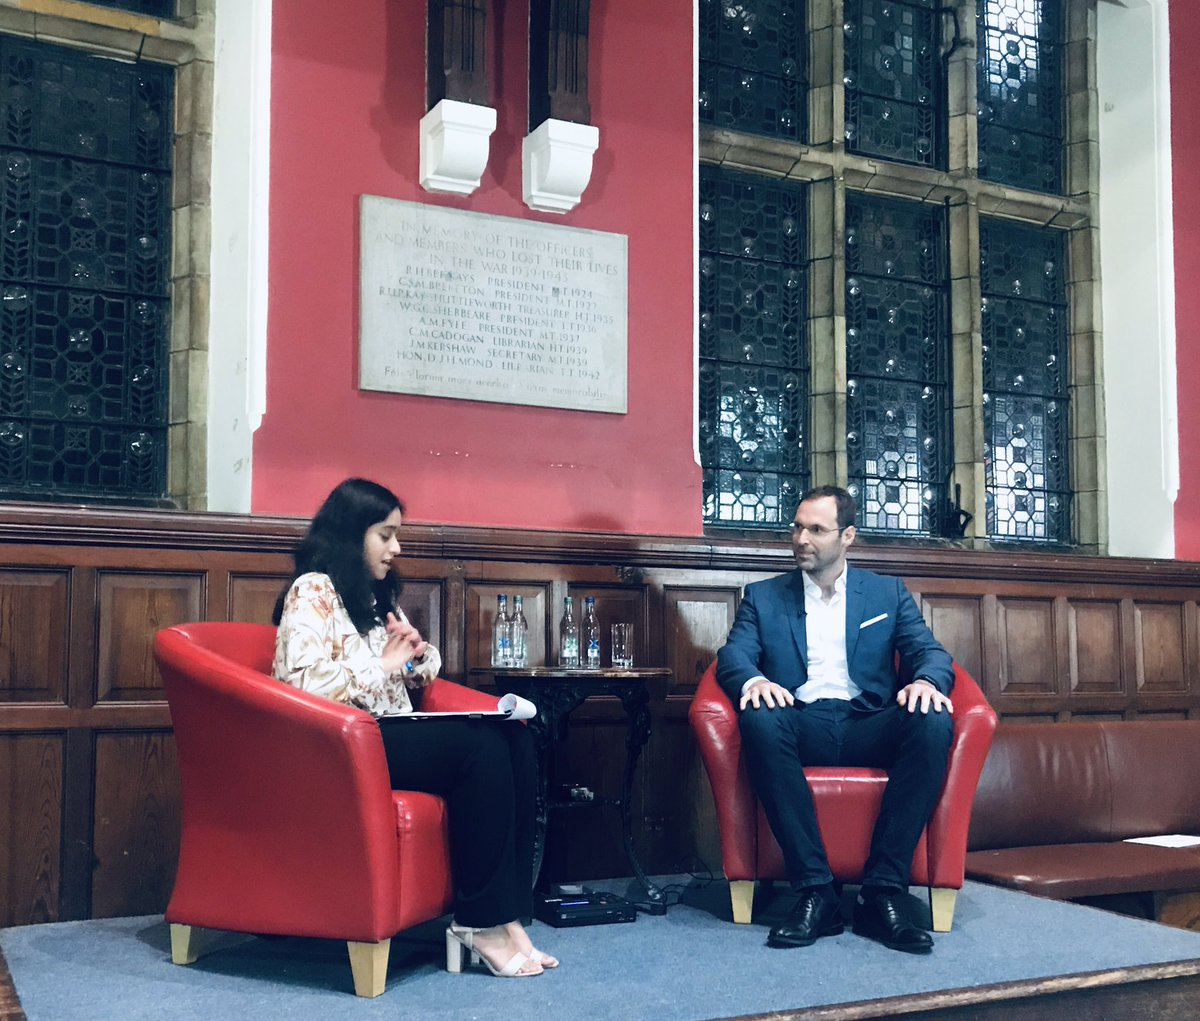 Great honour to speak this evening @UniofOxford @OxfordUnion definitely a better experience than when I was last in Oxford 13 years ago today having surgery after head injury